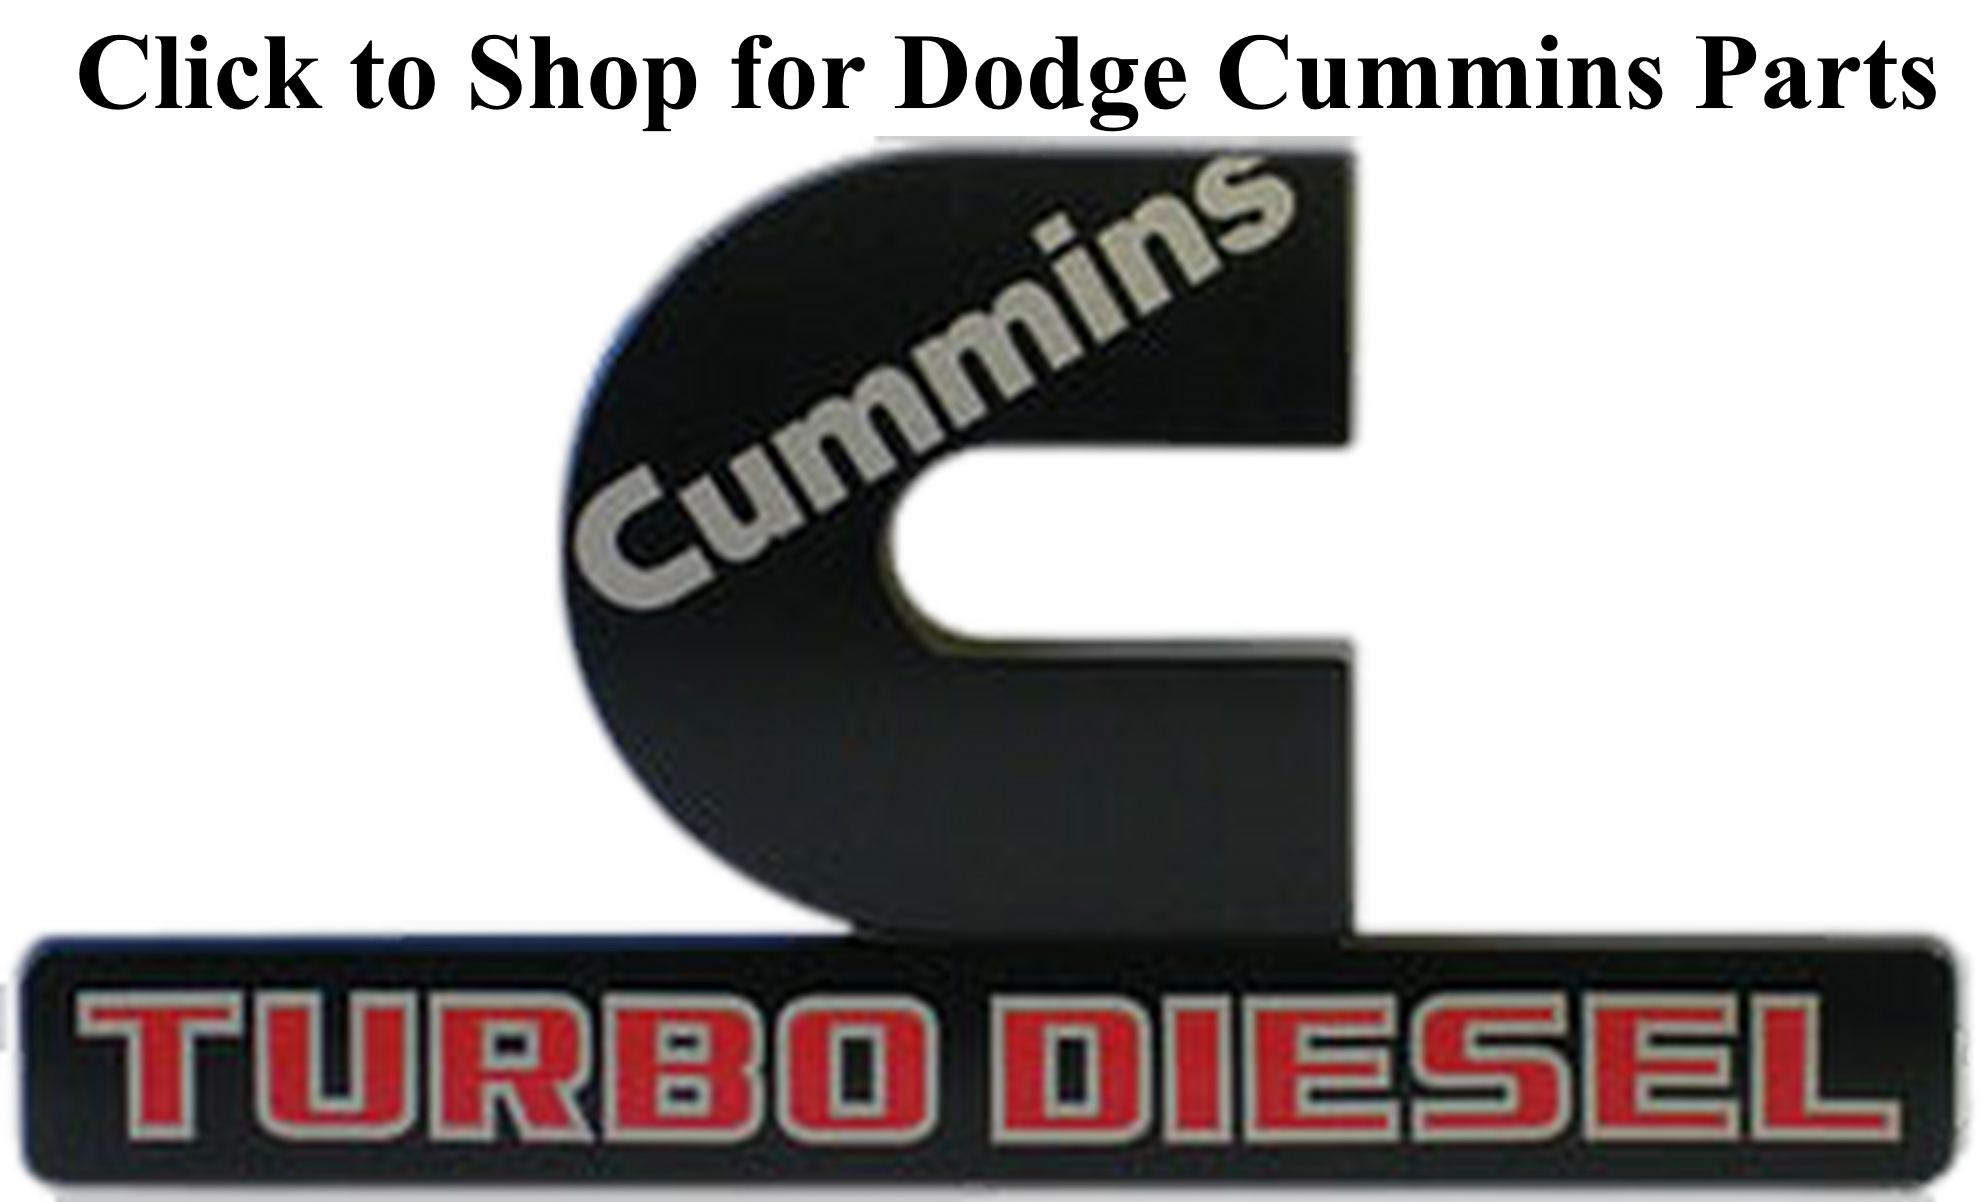 Browse Cummins Parts